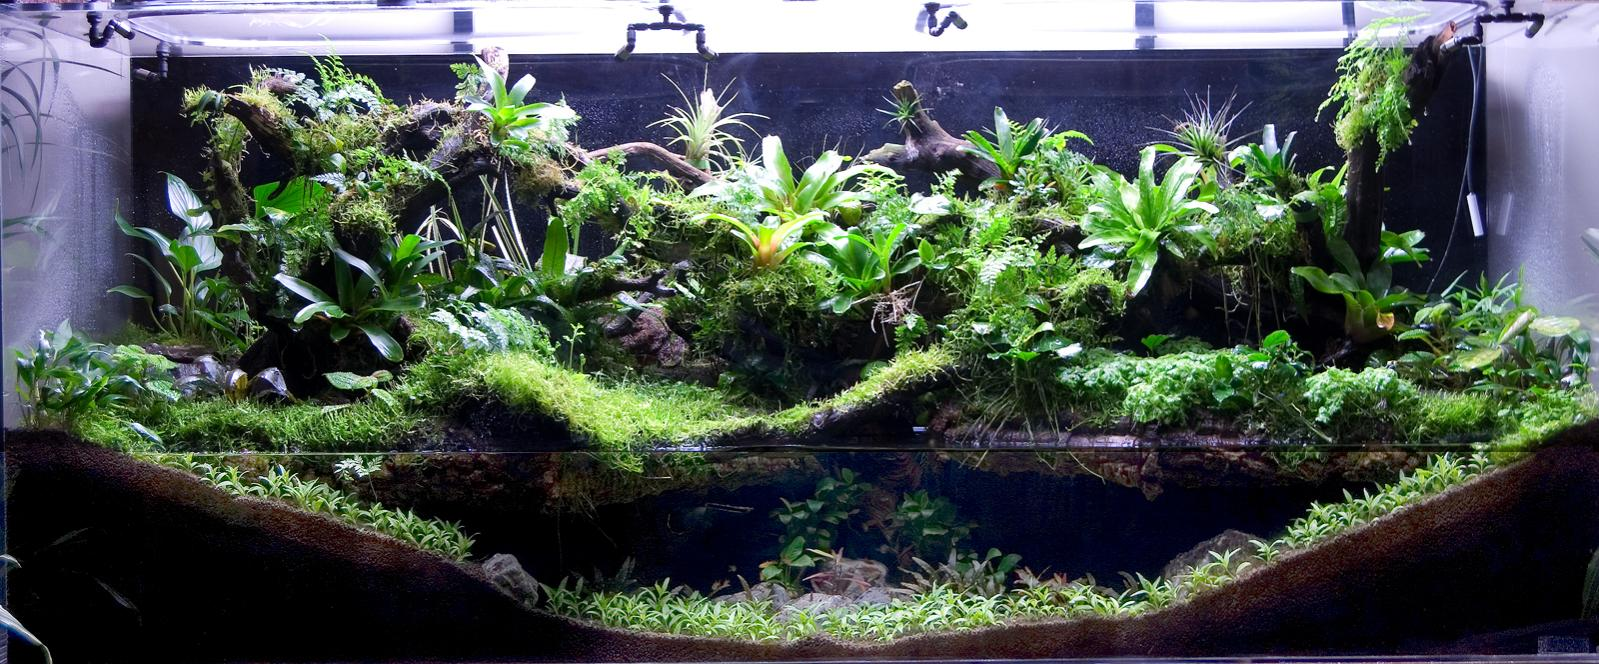 Aquascaping - Wikipedia, the free encyclopedia